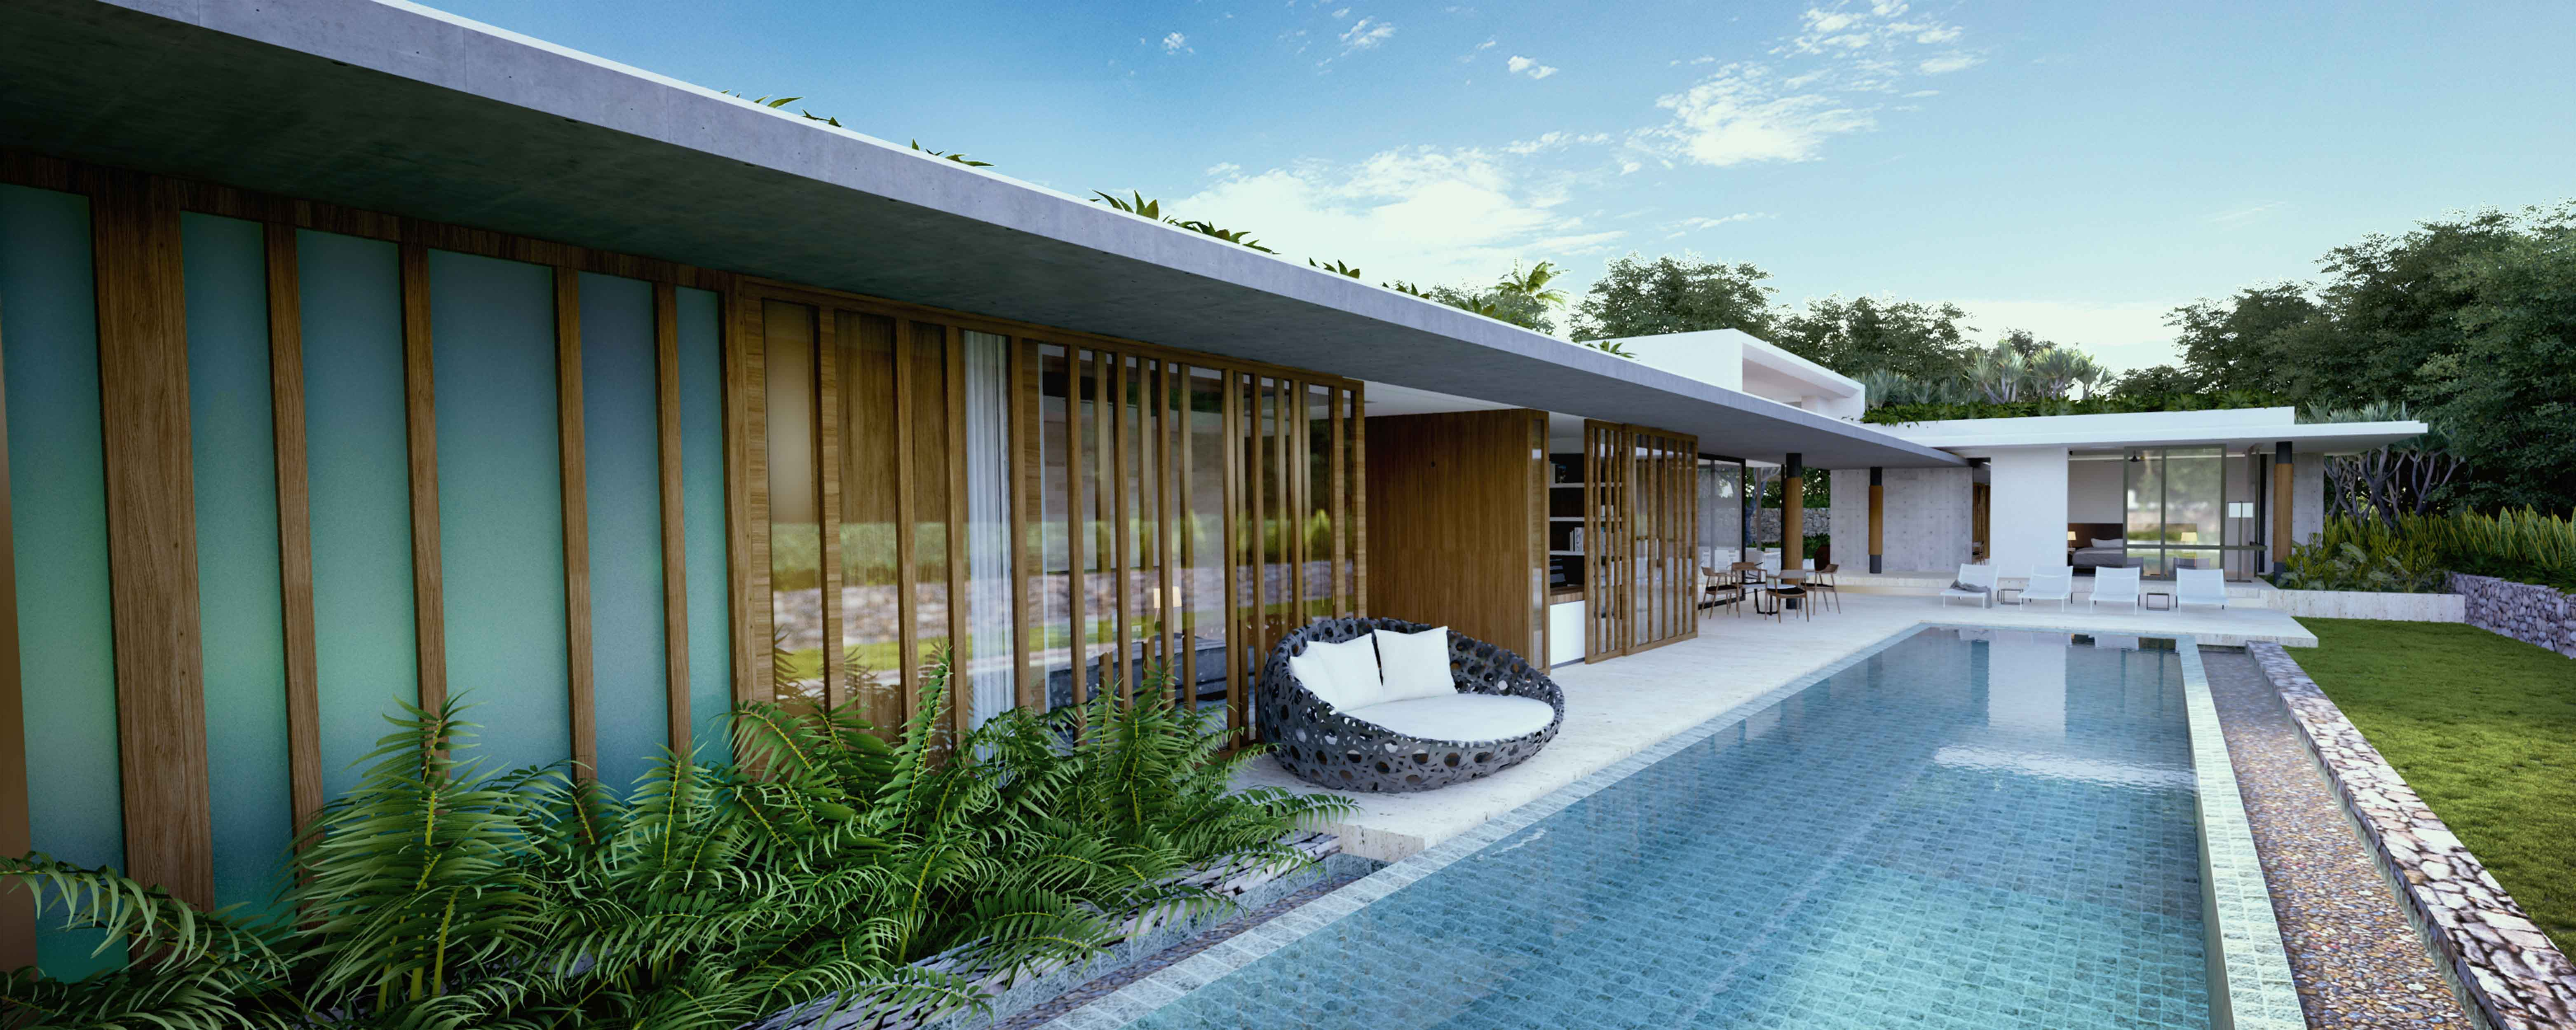 Projects Photo/Sunplay Lifestyle Bangsaray Thailand/sunplay-lifestyle-villa-e2